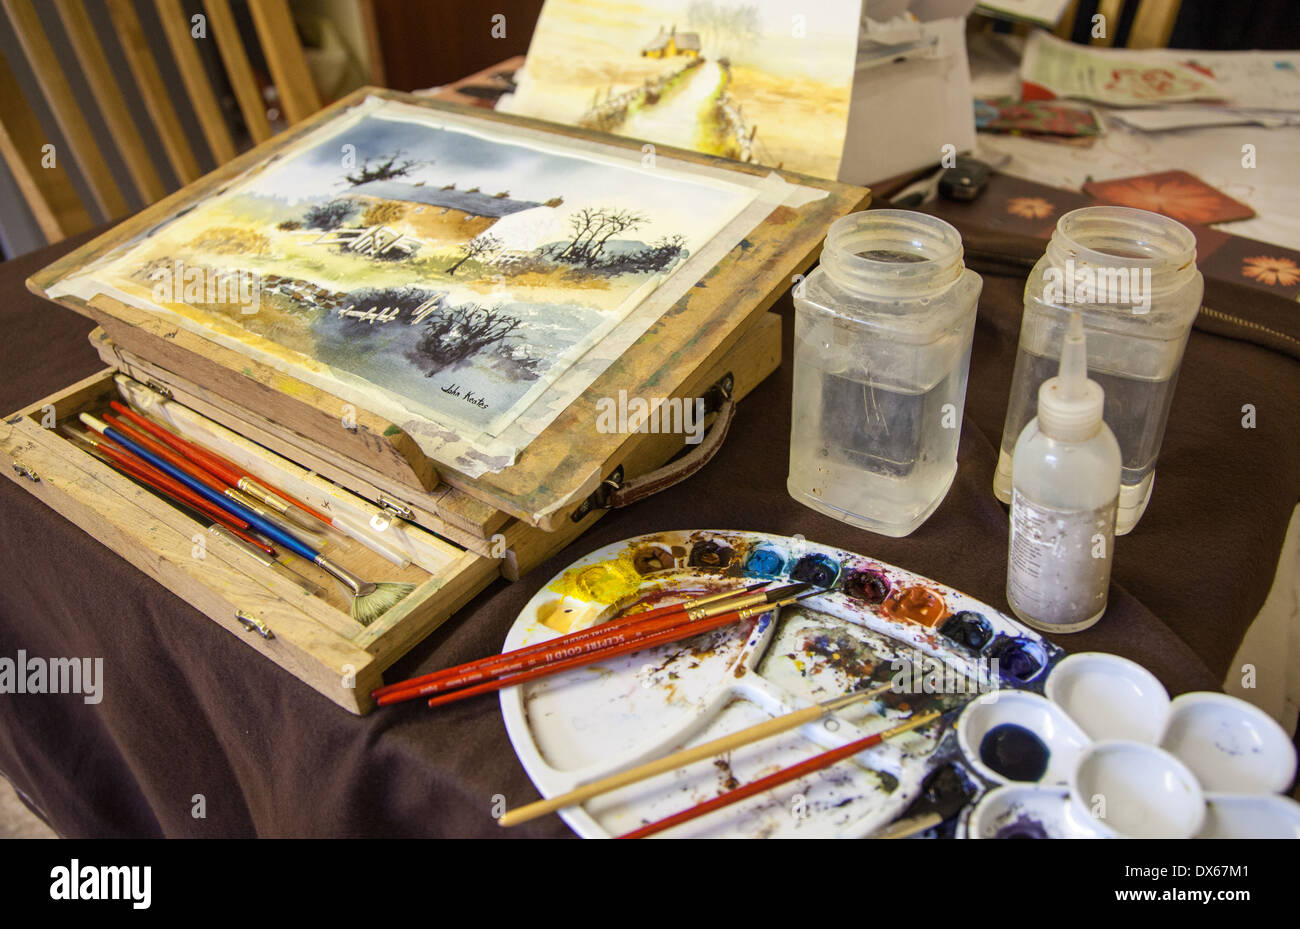 a-watercolour-painting-on-a-table-easel-with-a-palette-brushes-and-DX67M1.jpg